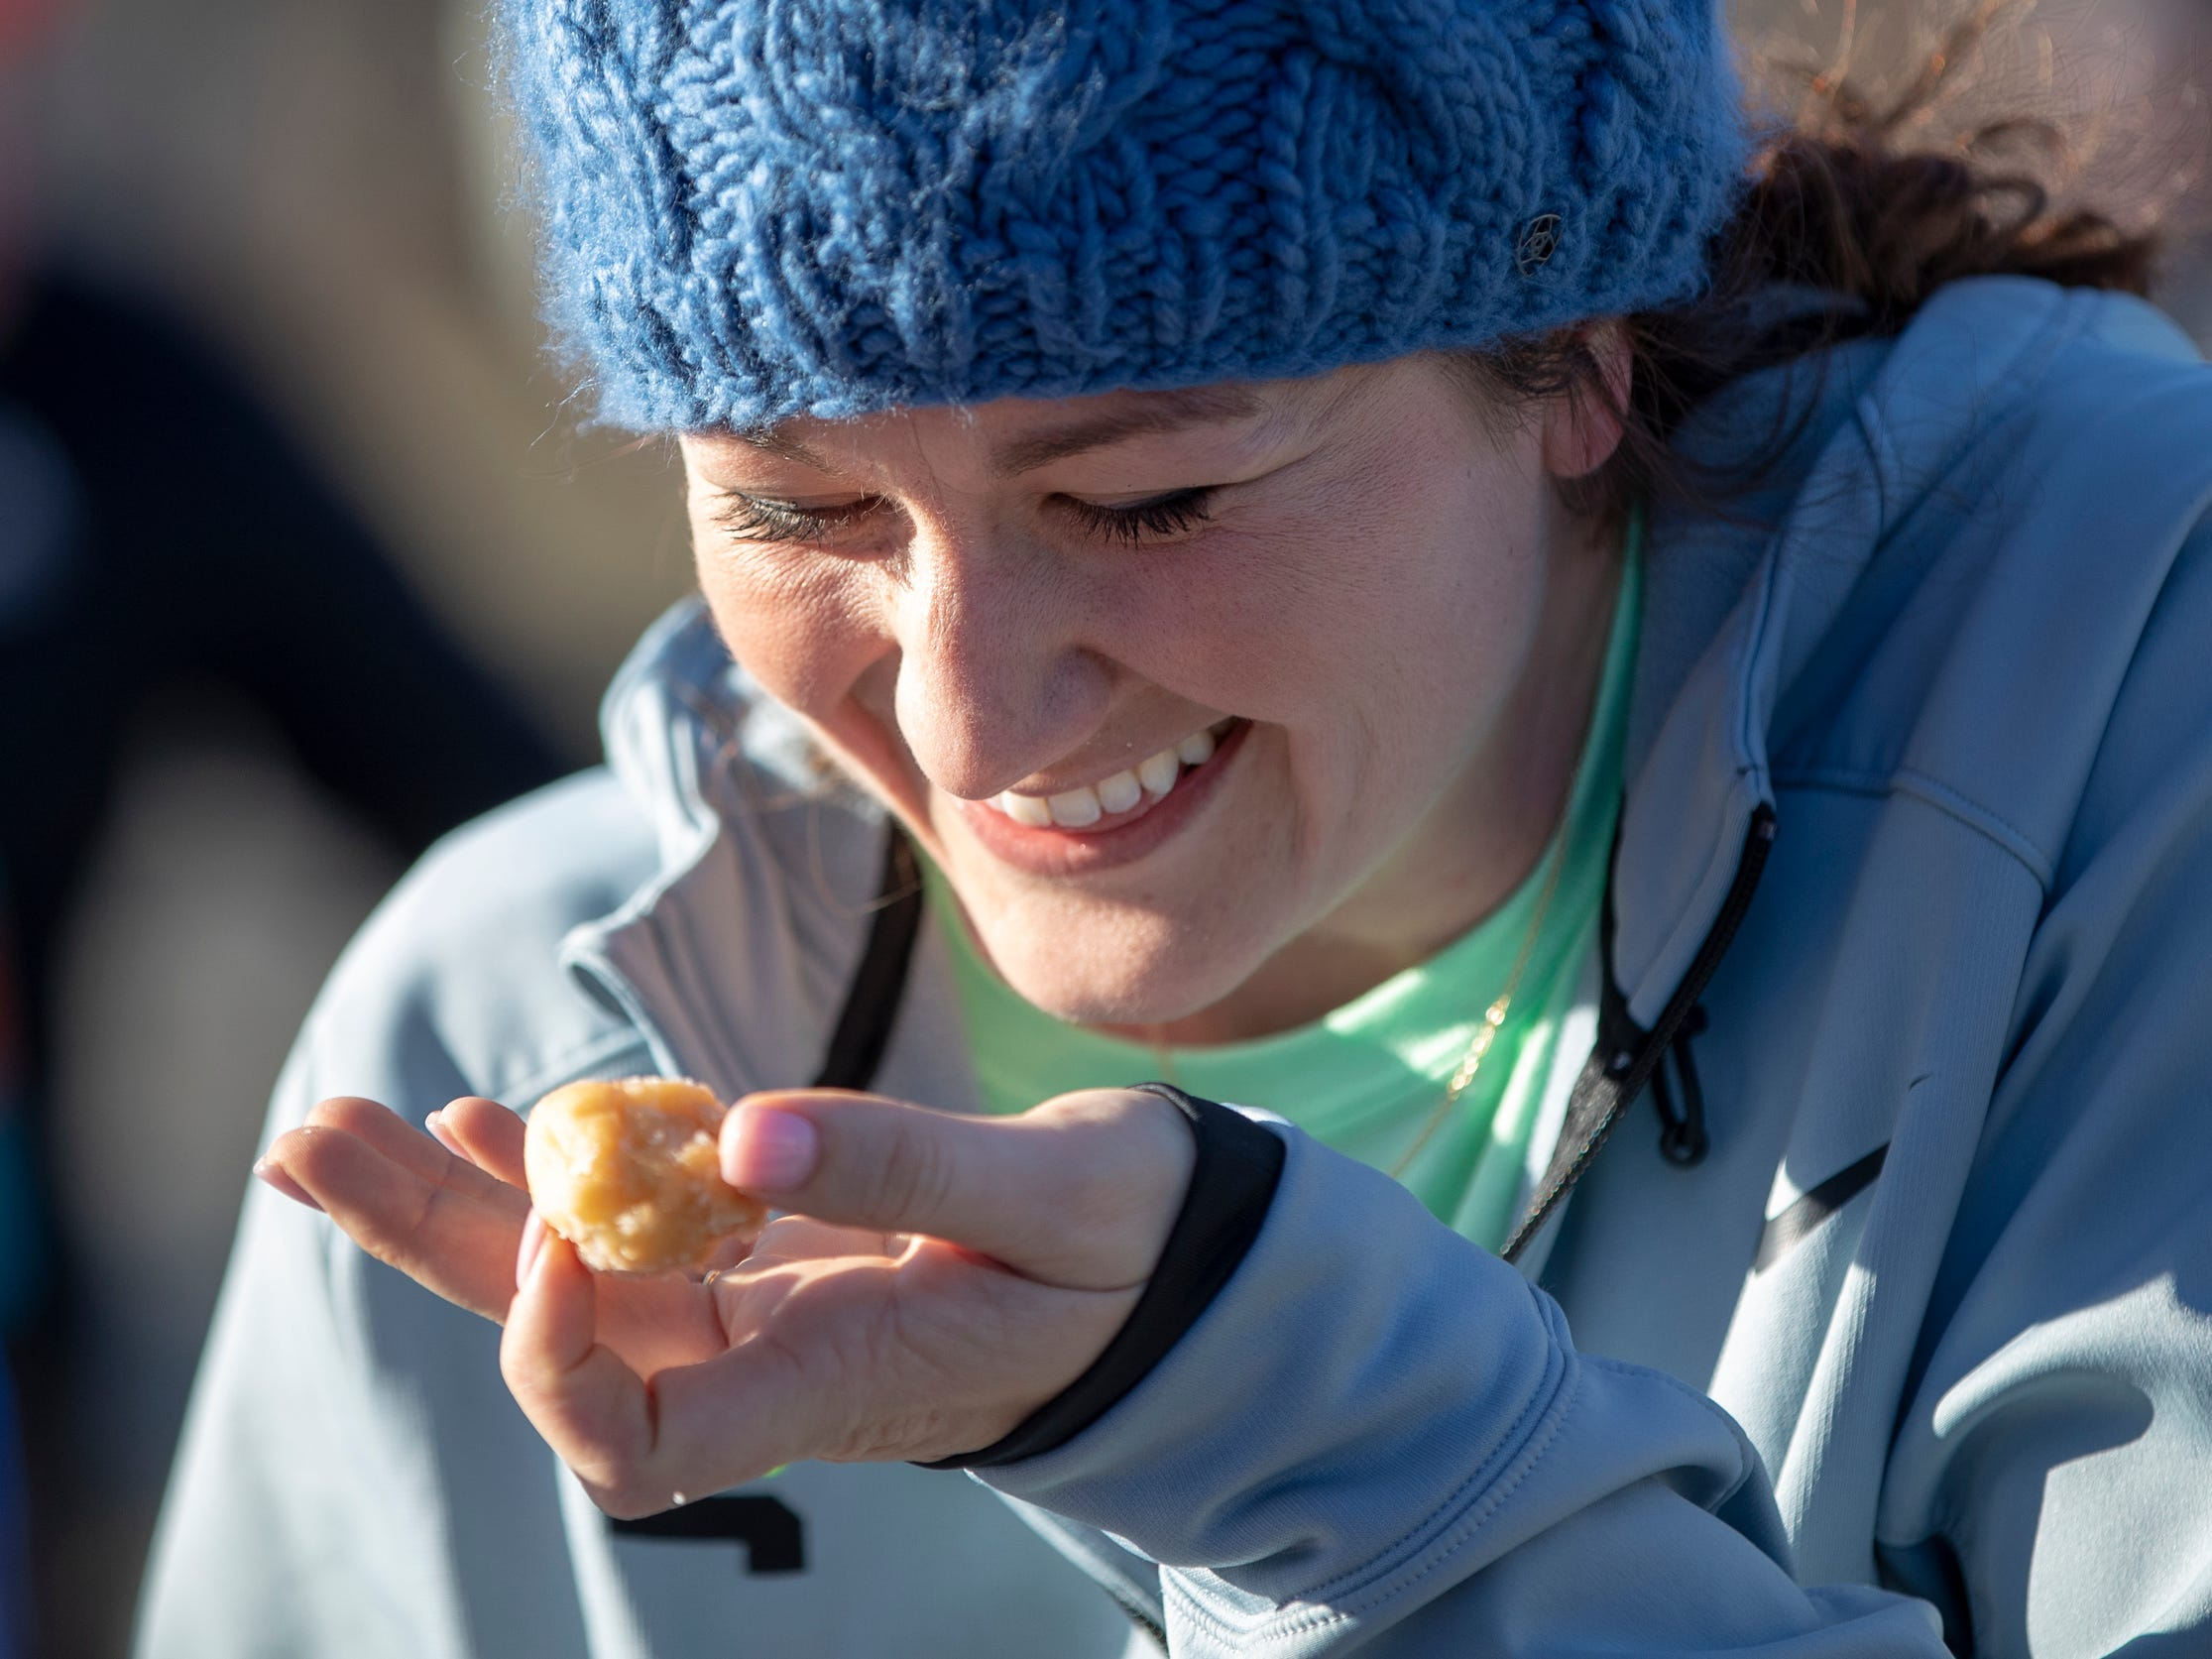 Blaire Barnhart laughs as she works on eating a doughnut hole during the Circle City Donut Dash 5k, a five kilometer race that benefits Teachers' Treasures, Indianapolis, Saturday, Feb. 16, 2019. The race invites willing runners to eat a dozen doughnut holes at the halfway point in the event that helps provide school supplies for area school kids.